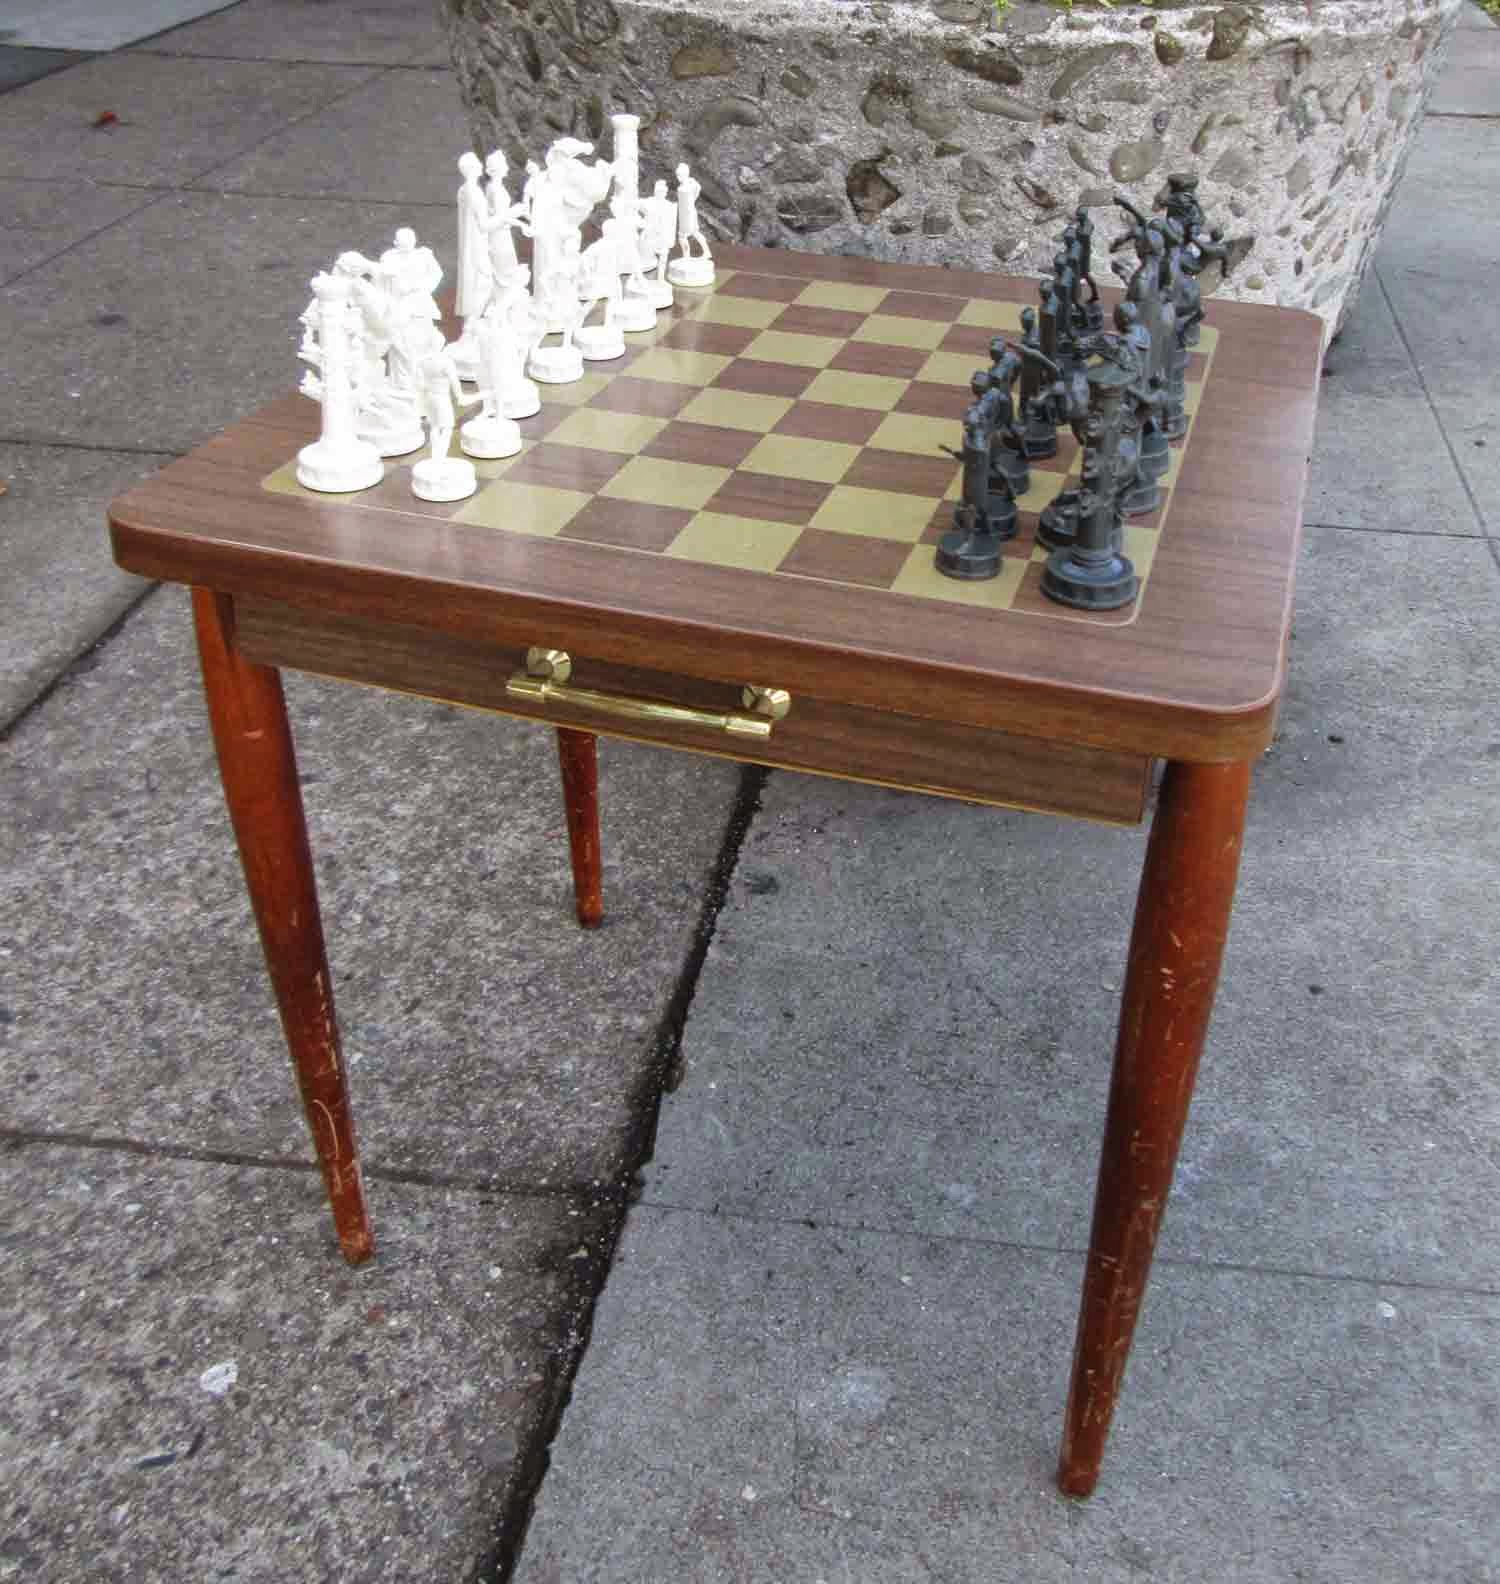 Chess Table And Chairs Beauty Salon Images Uhuru Furniture Collectibles Sold With 2